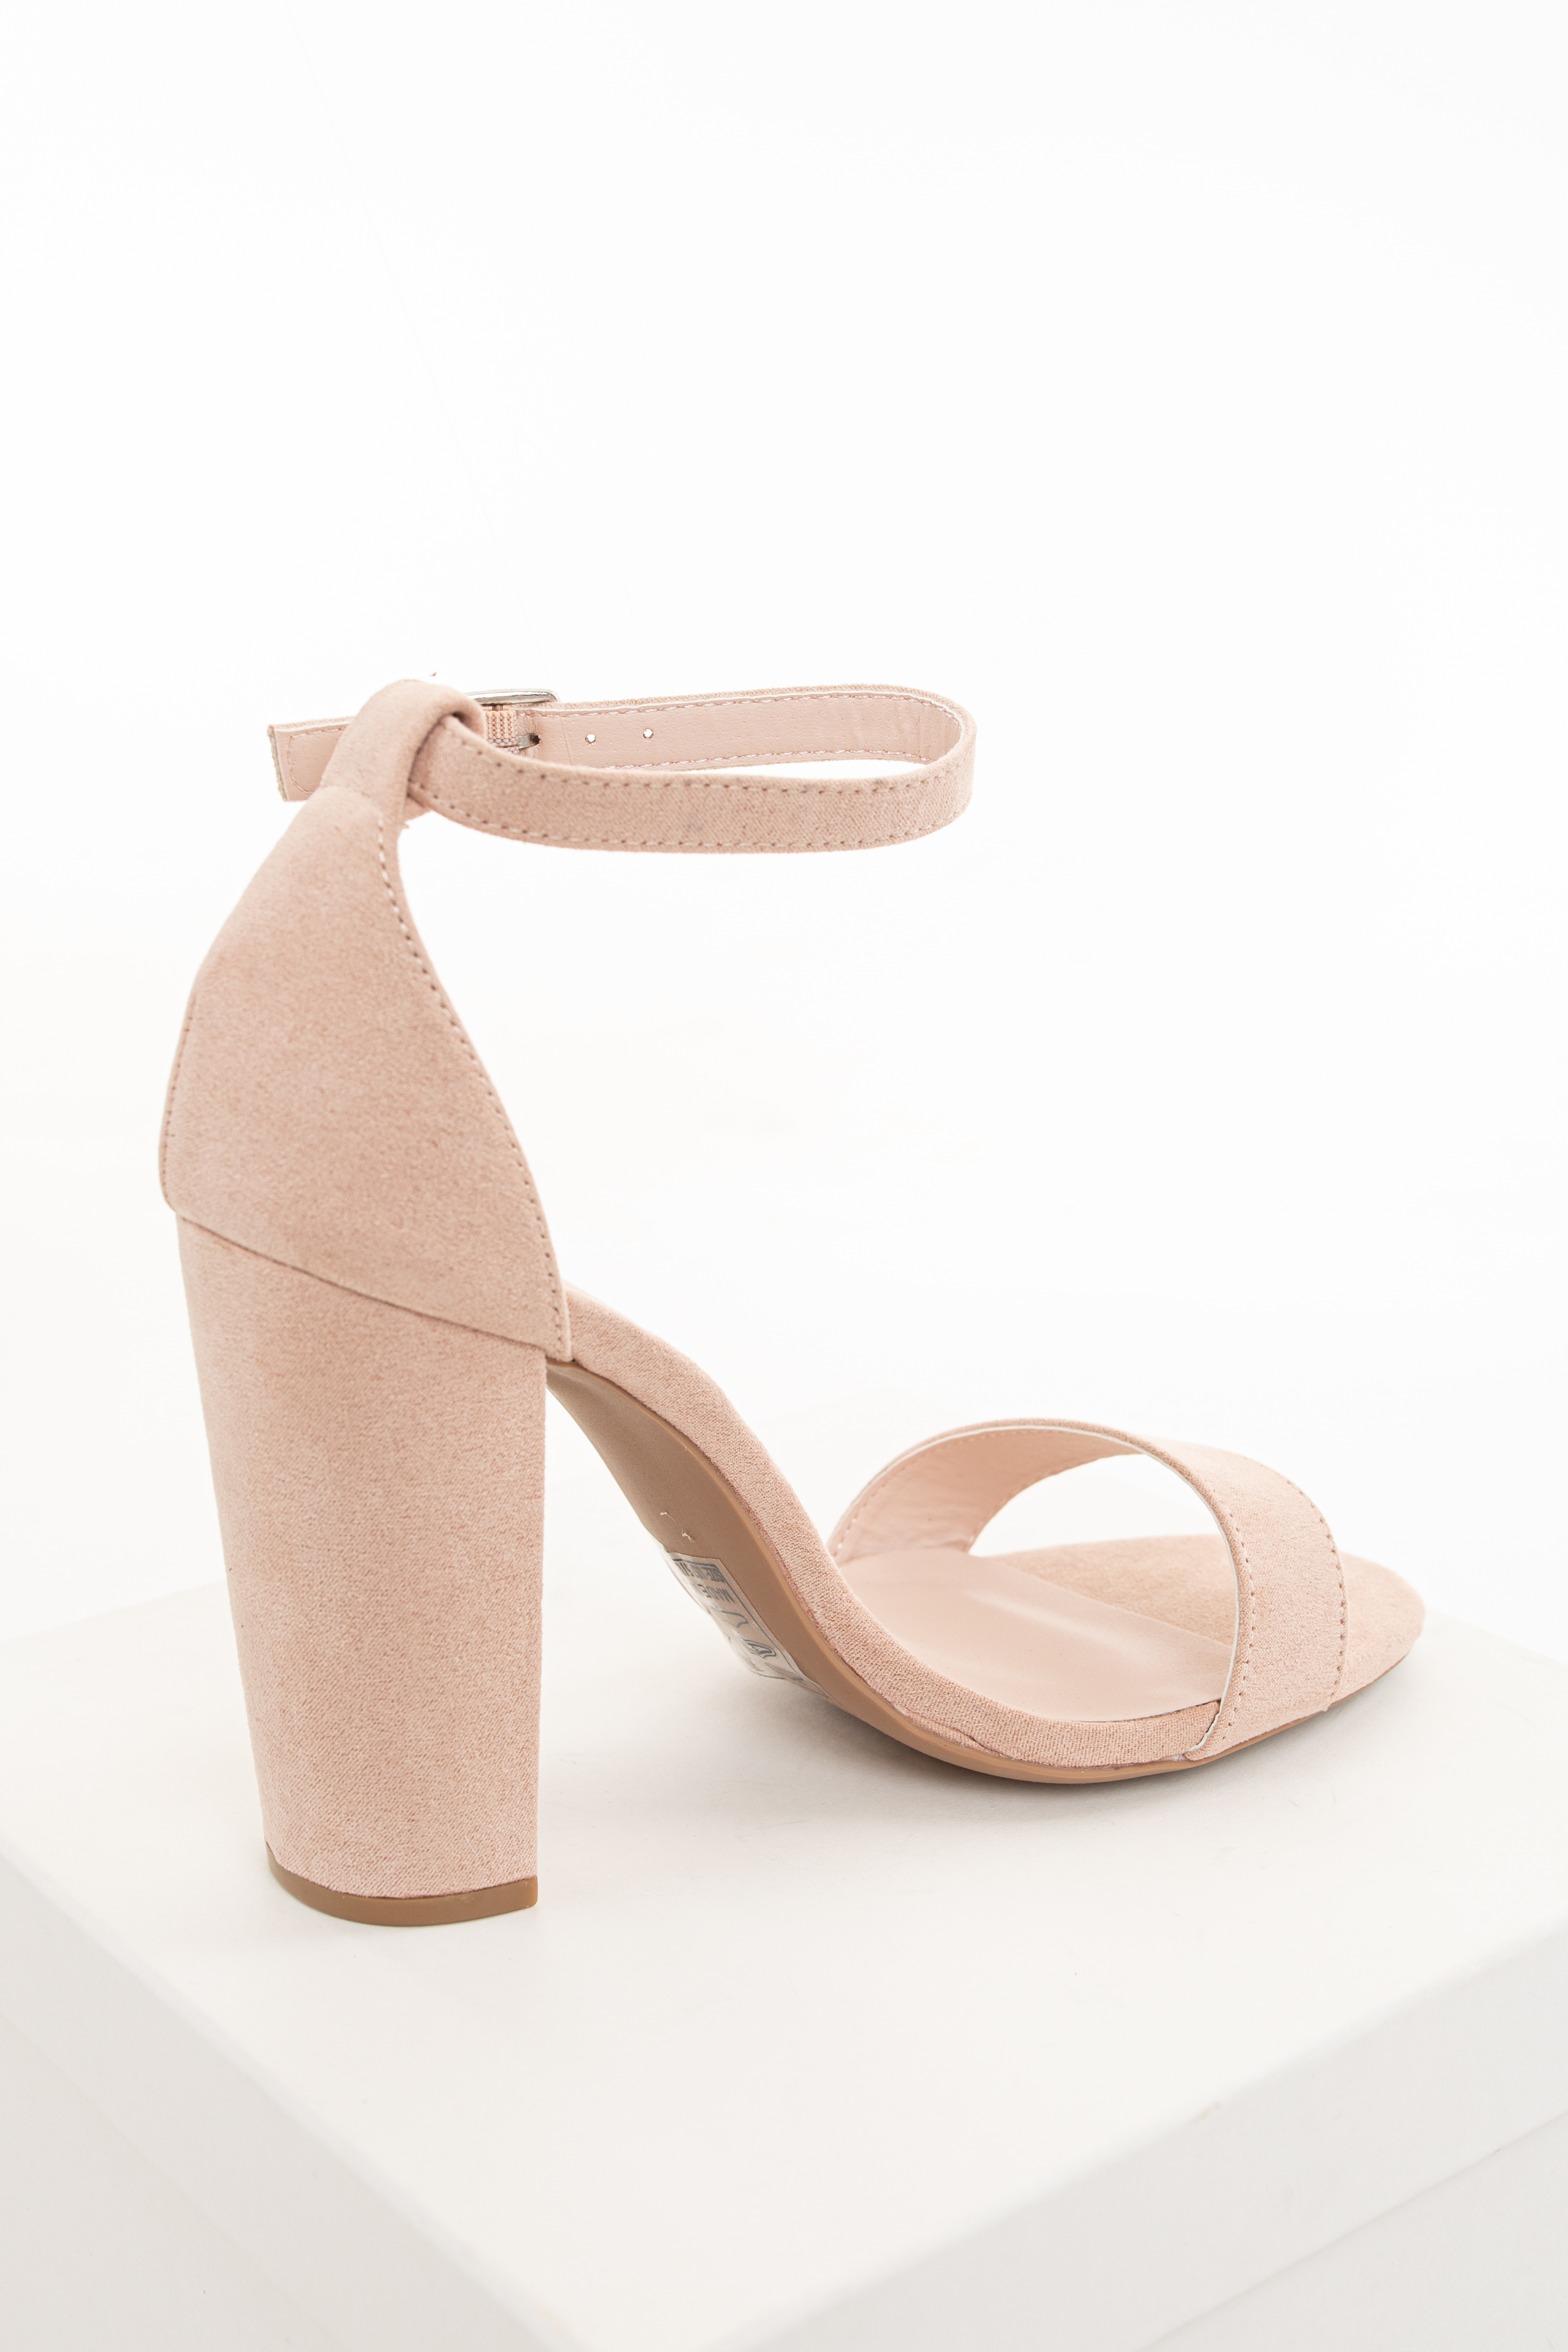 Blush Faux Suede One Strap High Heel with Buckle Closure